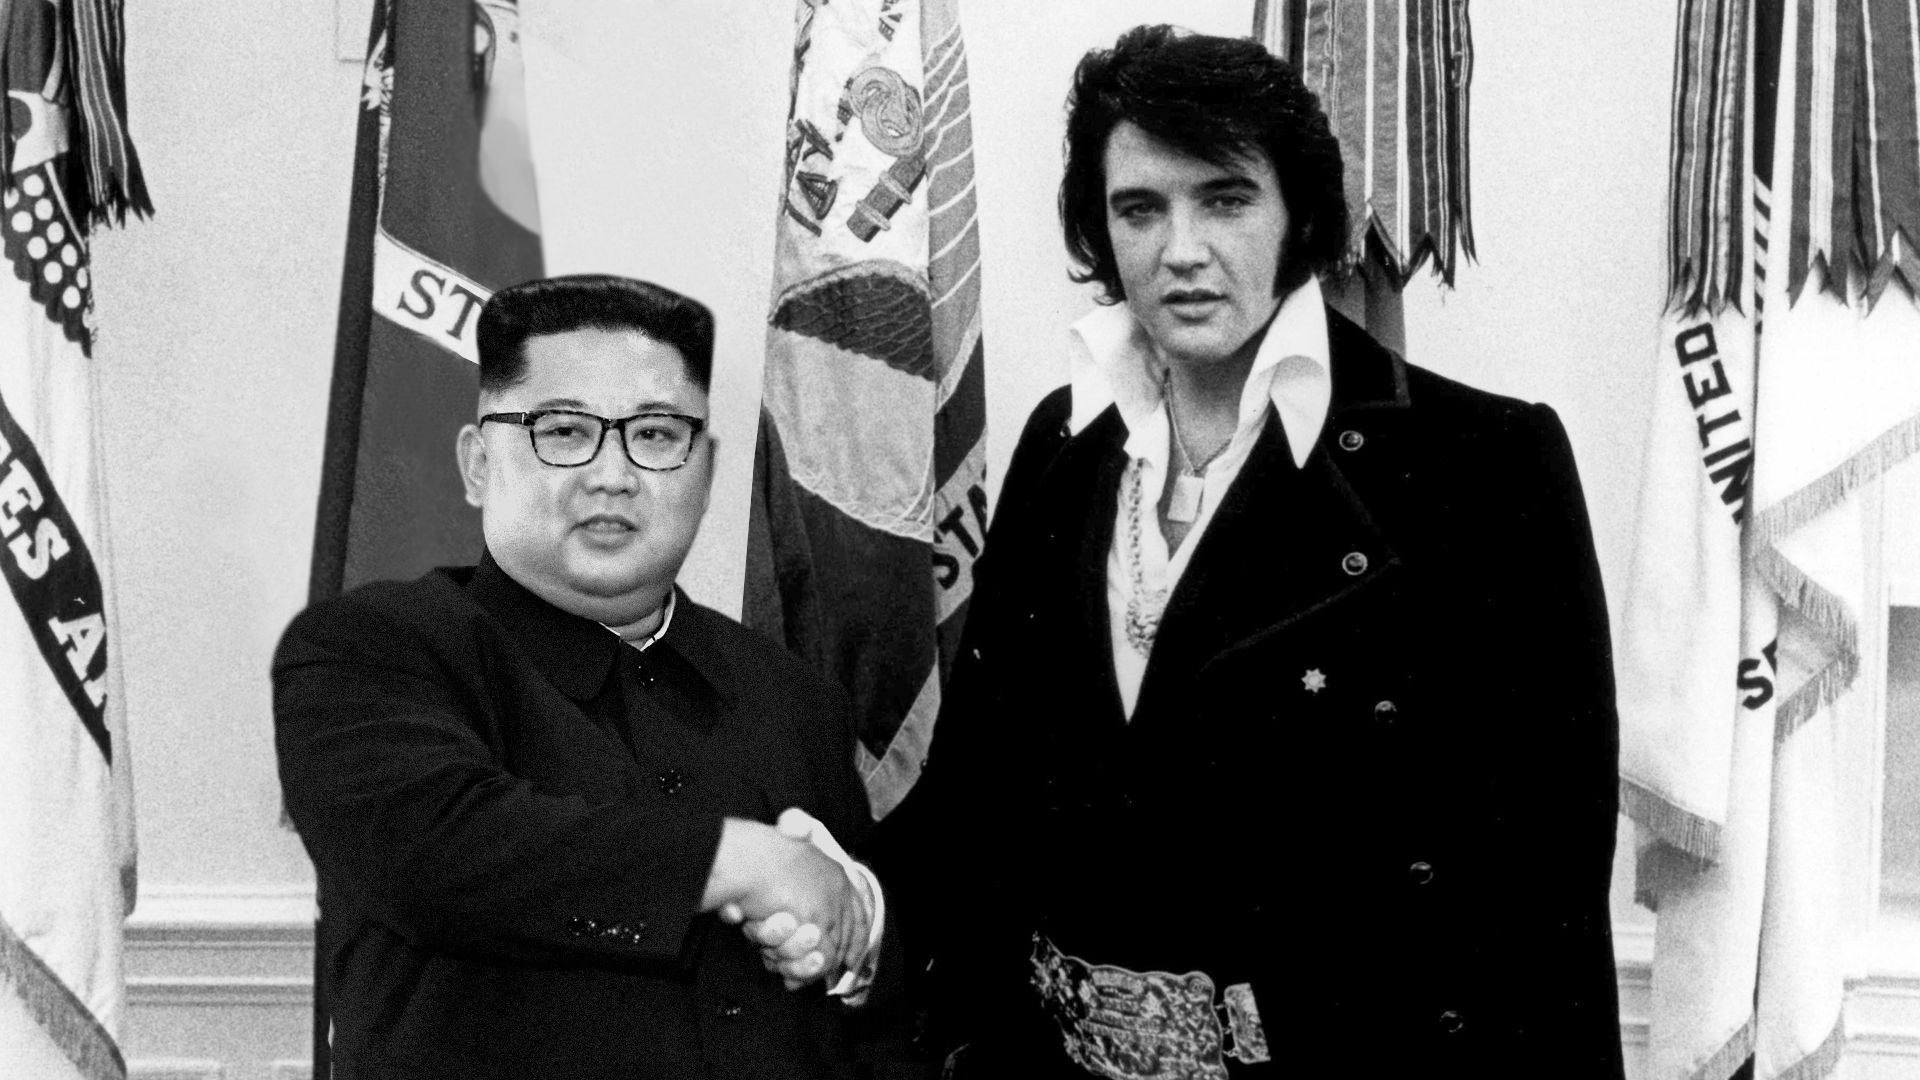 Altered image of Elvis shaking hands with Kim Jong-Un